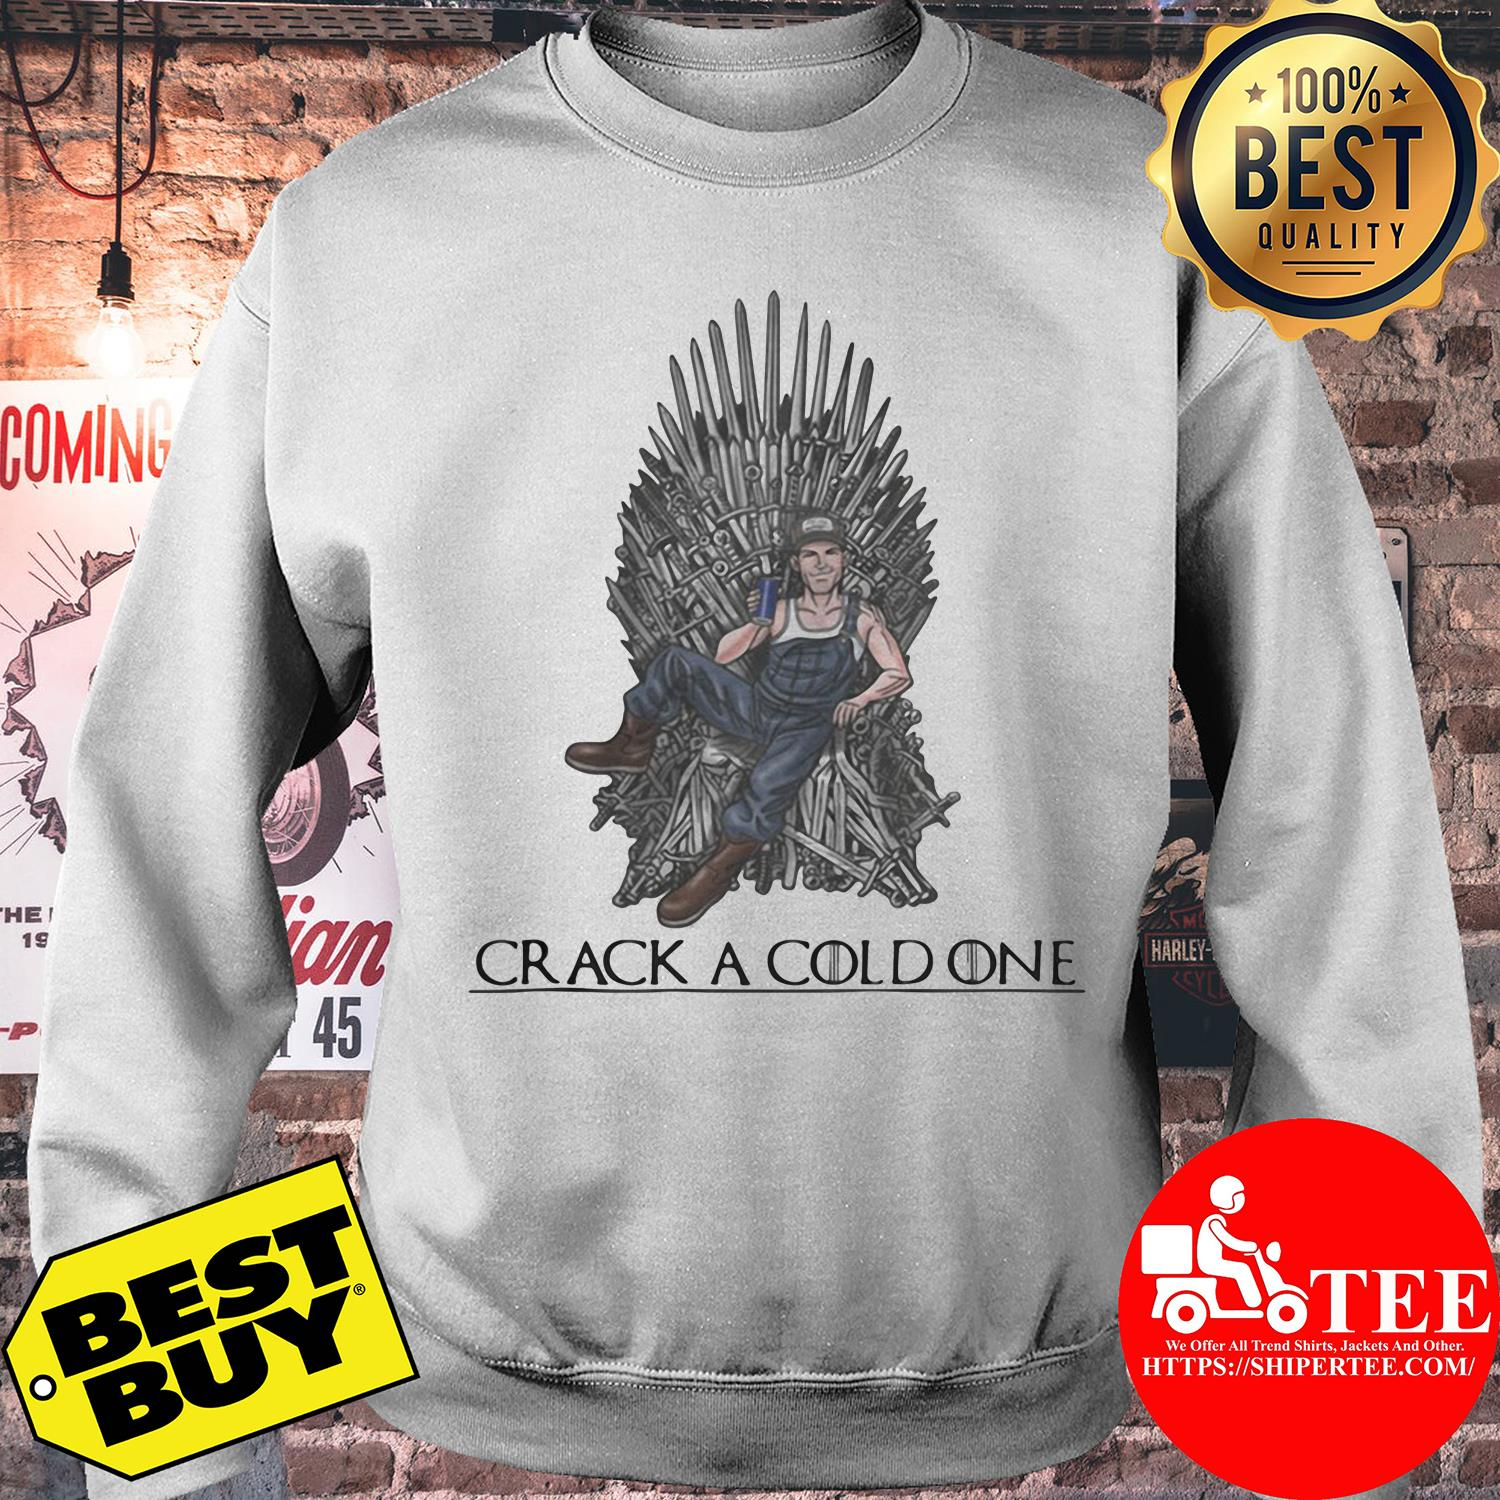 Crack a cold one Game of Thrones sweatshirt